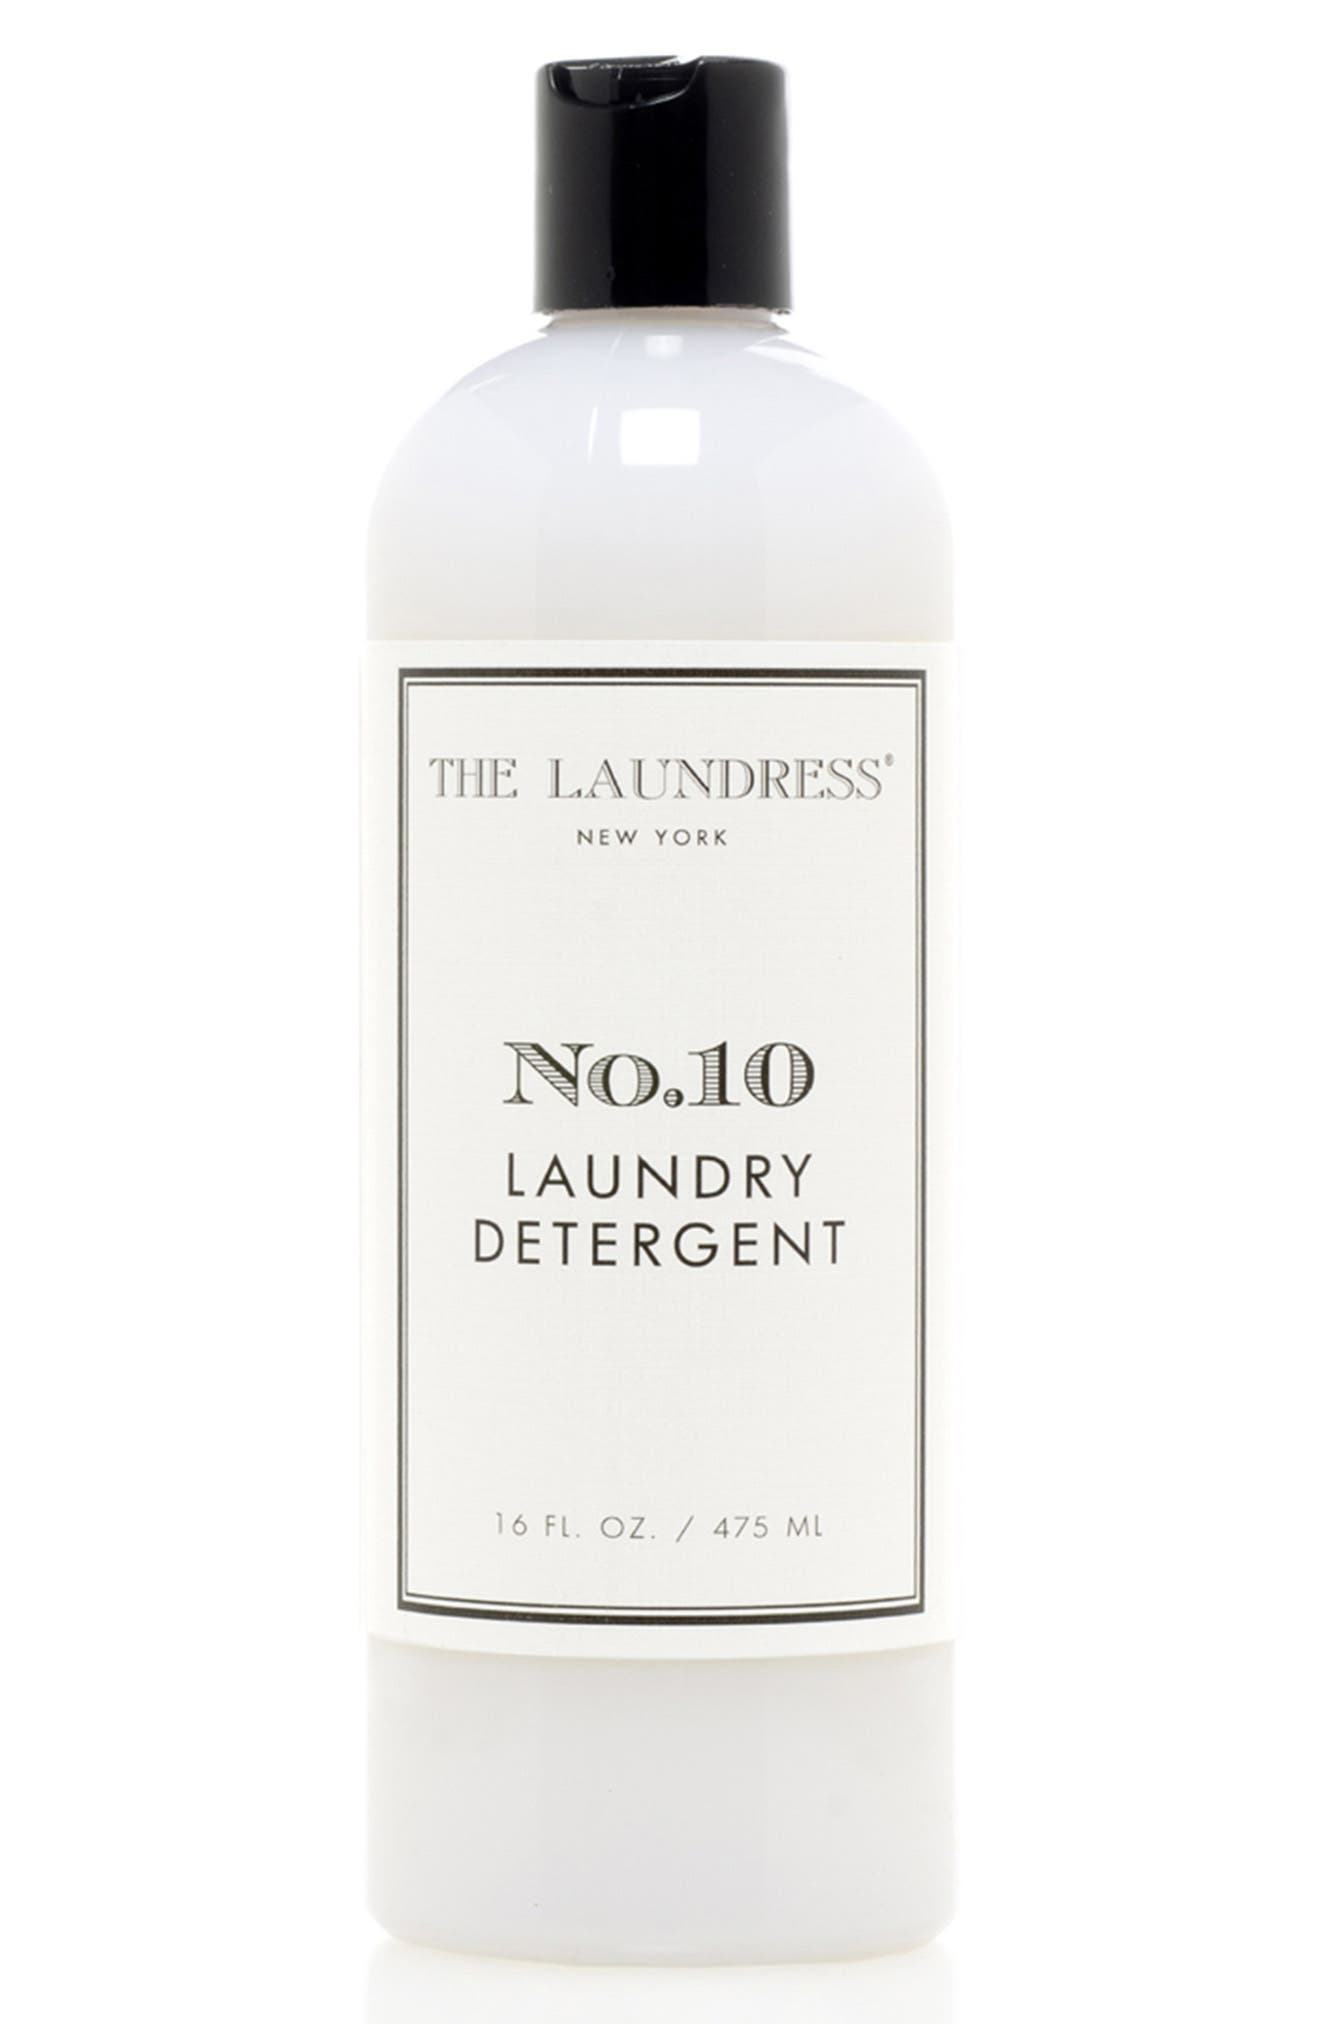 What it it is: A laundry detergent that delivers a sensorial washing experience while whitening, brightening, preserving color and removing stains. Fragrance story: This rich and sophisticated fragrance blends bold spice and warm musk with pure and fresh powder notes-this is laundry after all. Style Name: The Laundress No.10 Laundry Detergent. Style Number: 6153028. Available in stores.